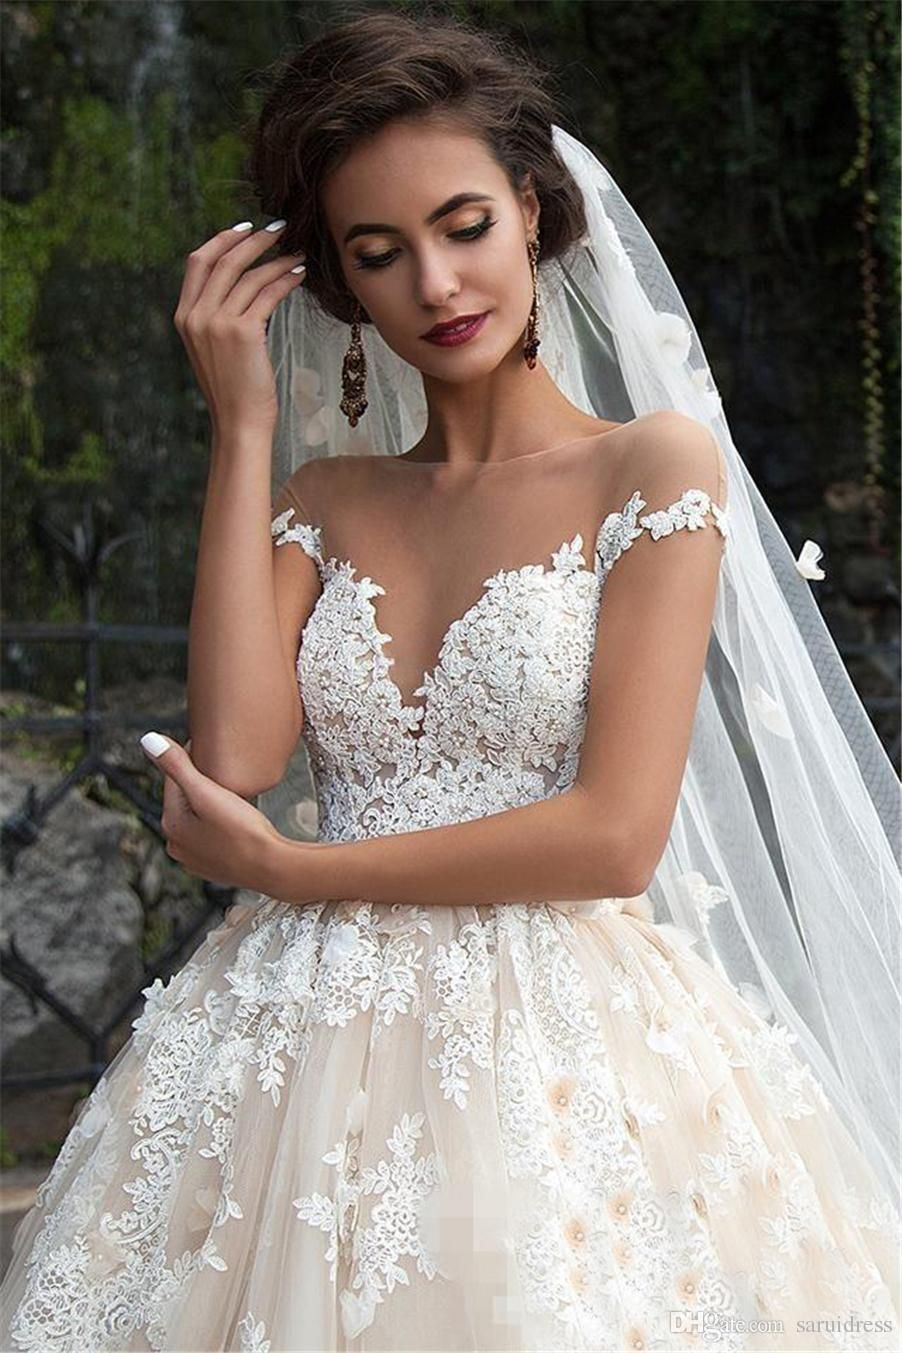 49a757018ce4 Illusion Boat Neck Short Sleeves A-line Floral Appliques Plus Size Chapel  Train Bridal Gowns Champagne Retro Zuhair Murad Lace Wedding Dress